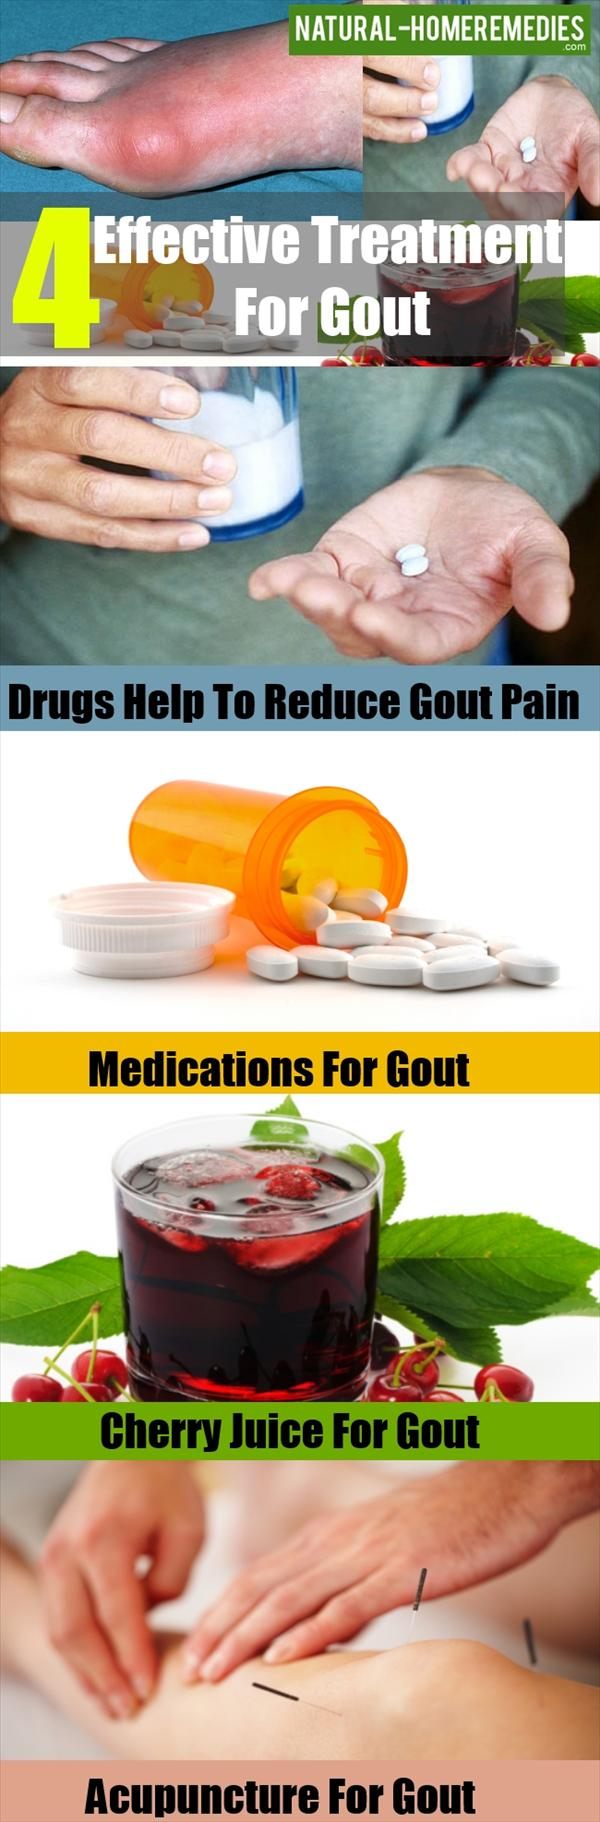 Natural Cure for Gout Treatments Effective-Treatment-For-Gout24